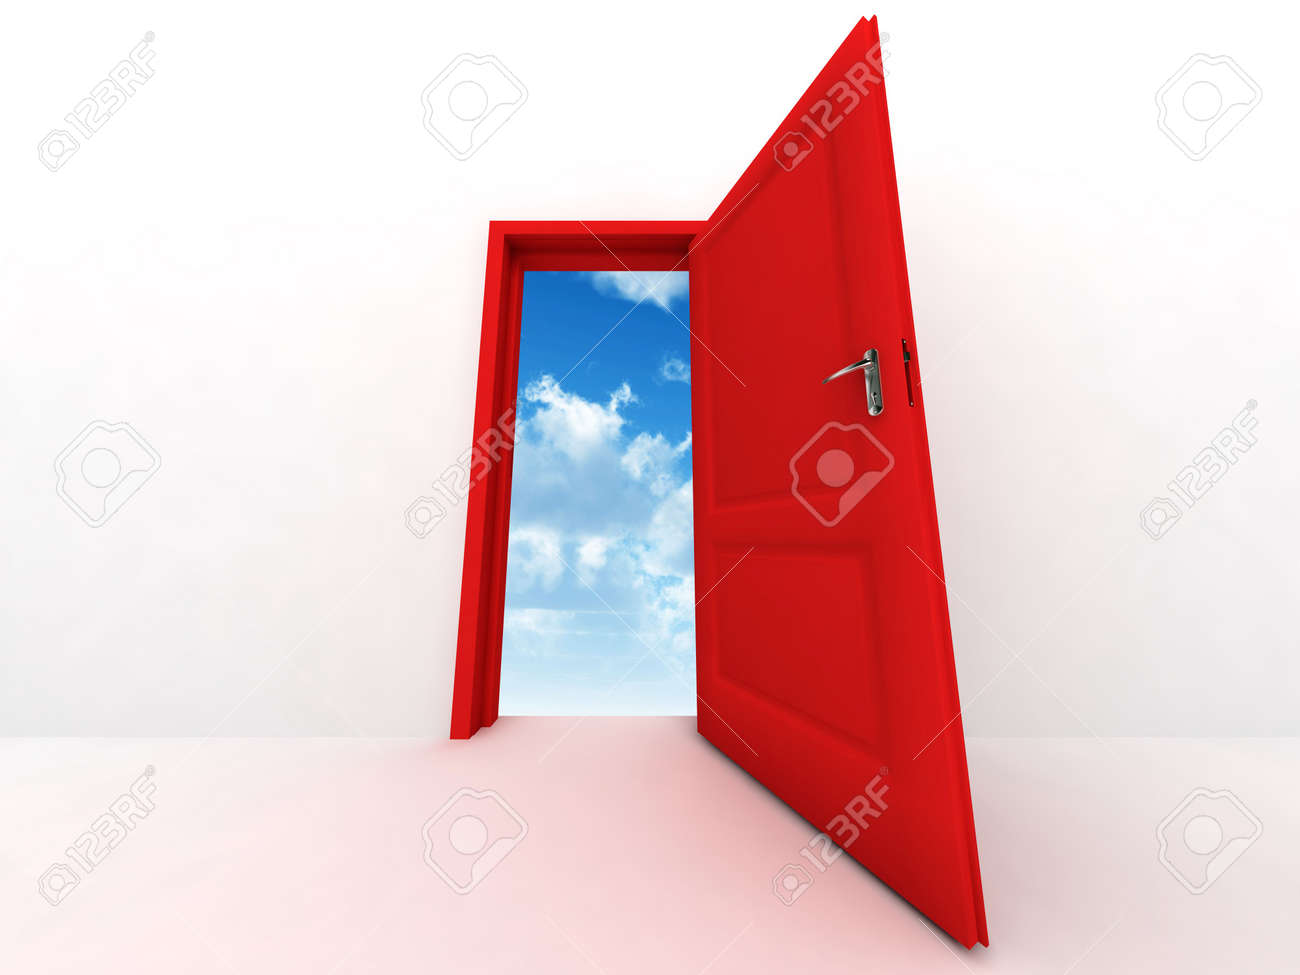 wall and opened to sky red door on a white background Stock Photo - 4751607